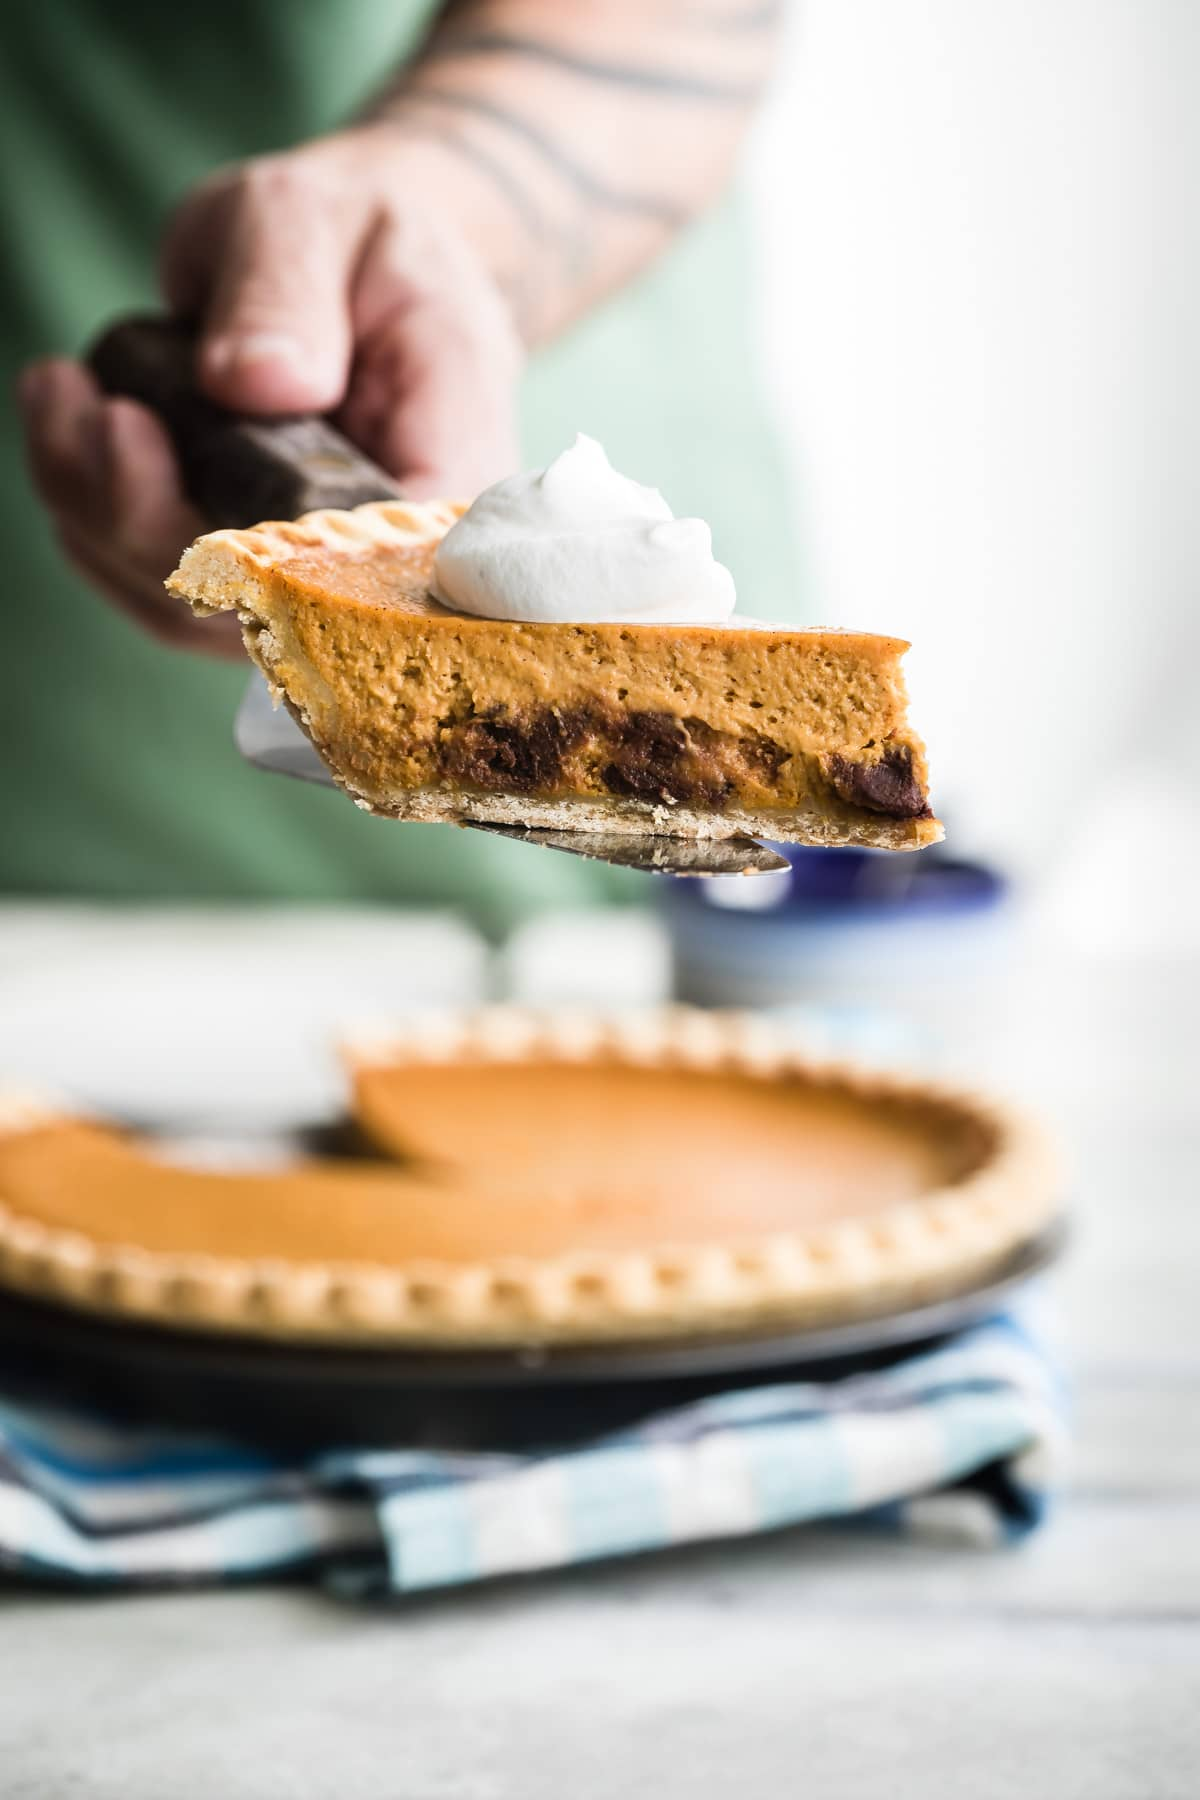 A slice of pumpkin pie with whipped cream on top and chocolate